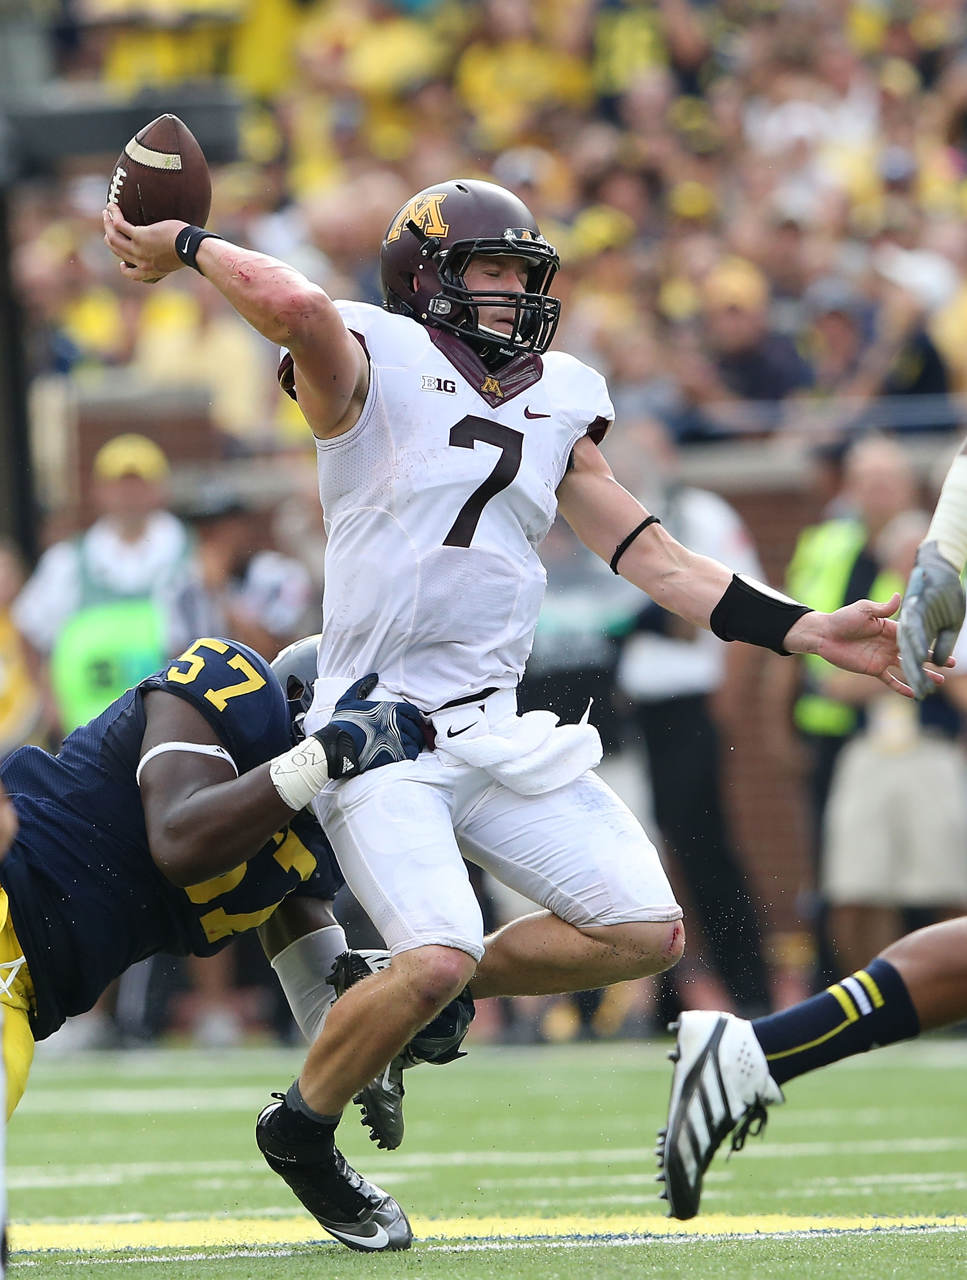 . Minnesota quarterback Mitch Leidner makes a throw as Michigan linebacker Frank Clark attempts to make the stop during the first quarter. (Photo by Leon Halip/Getty Images)